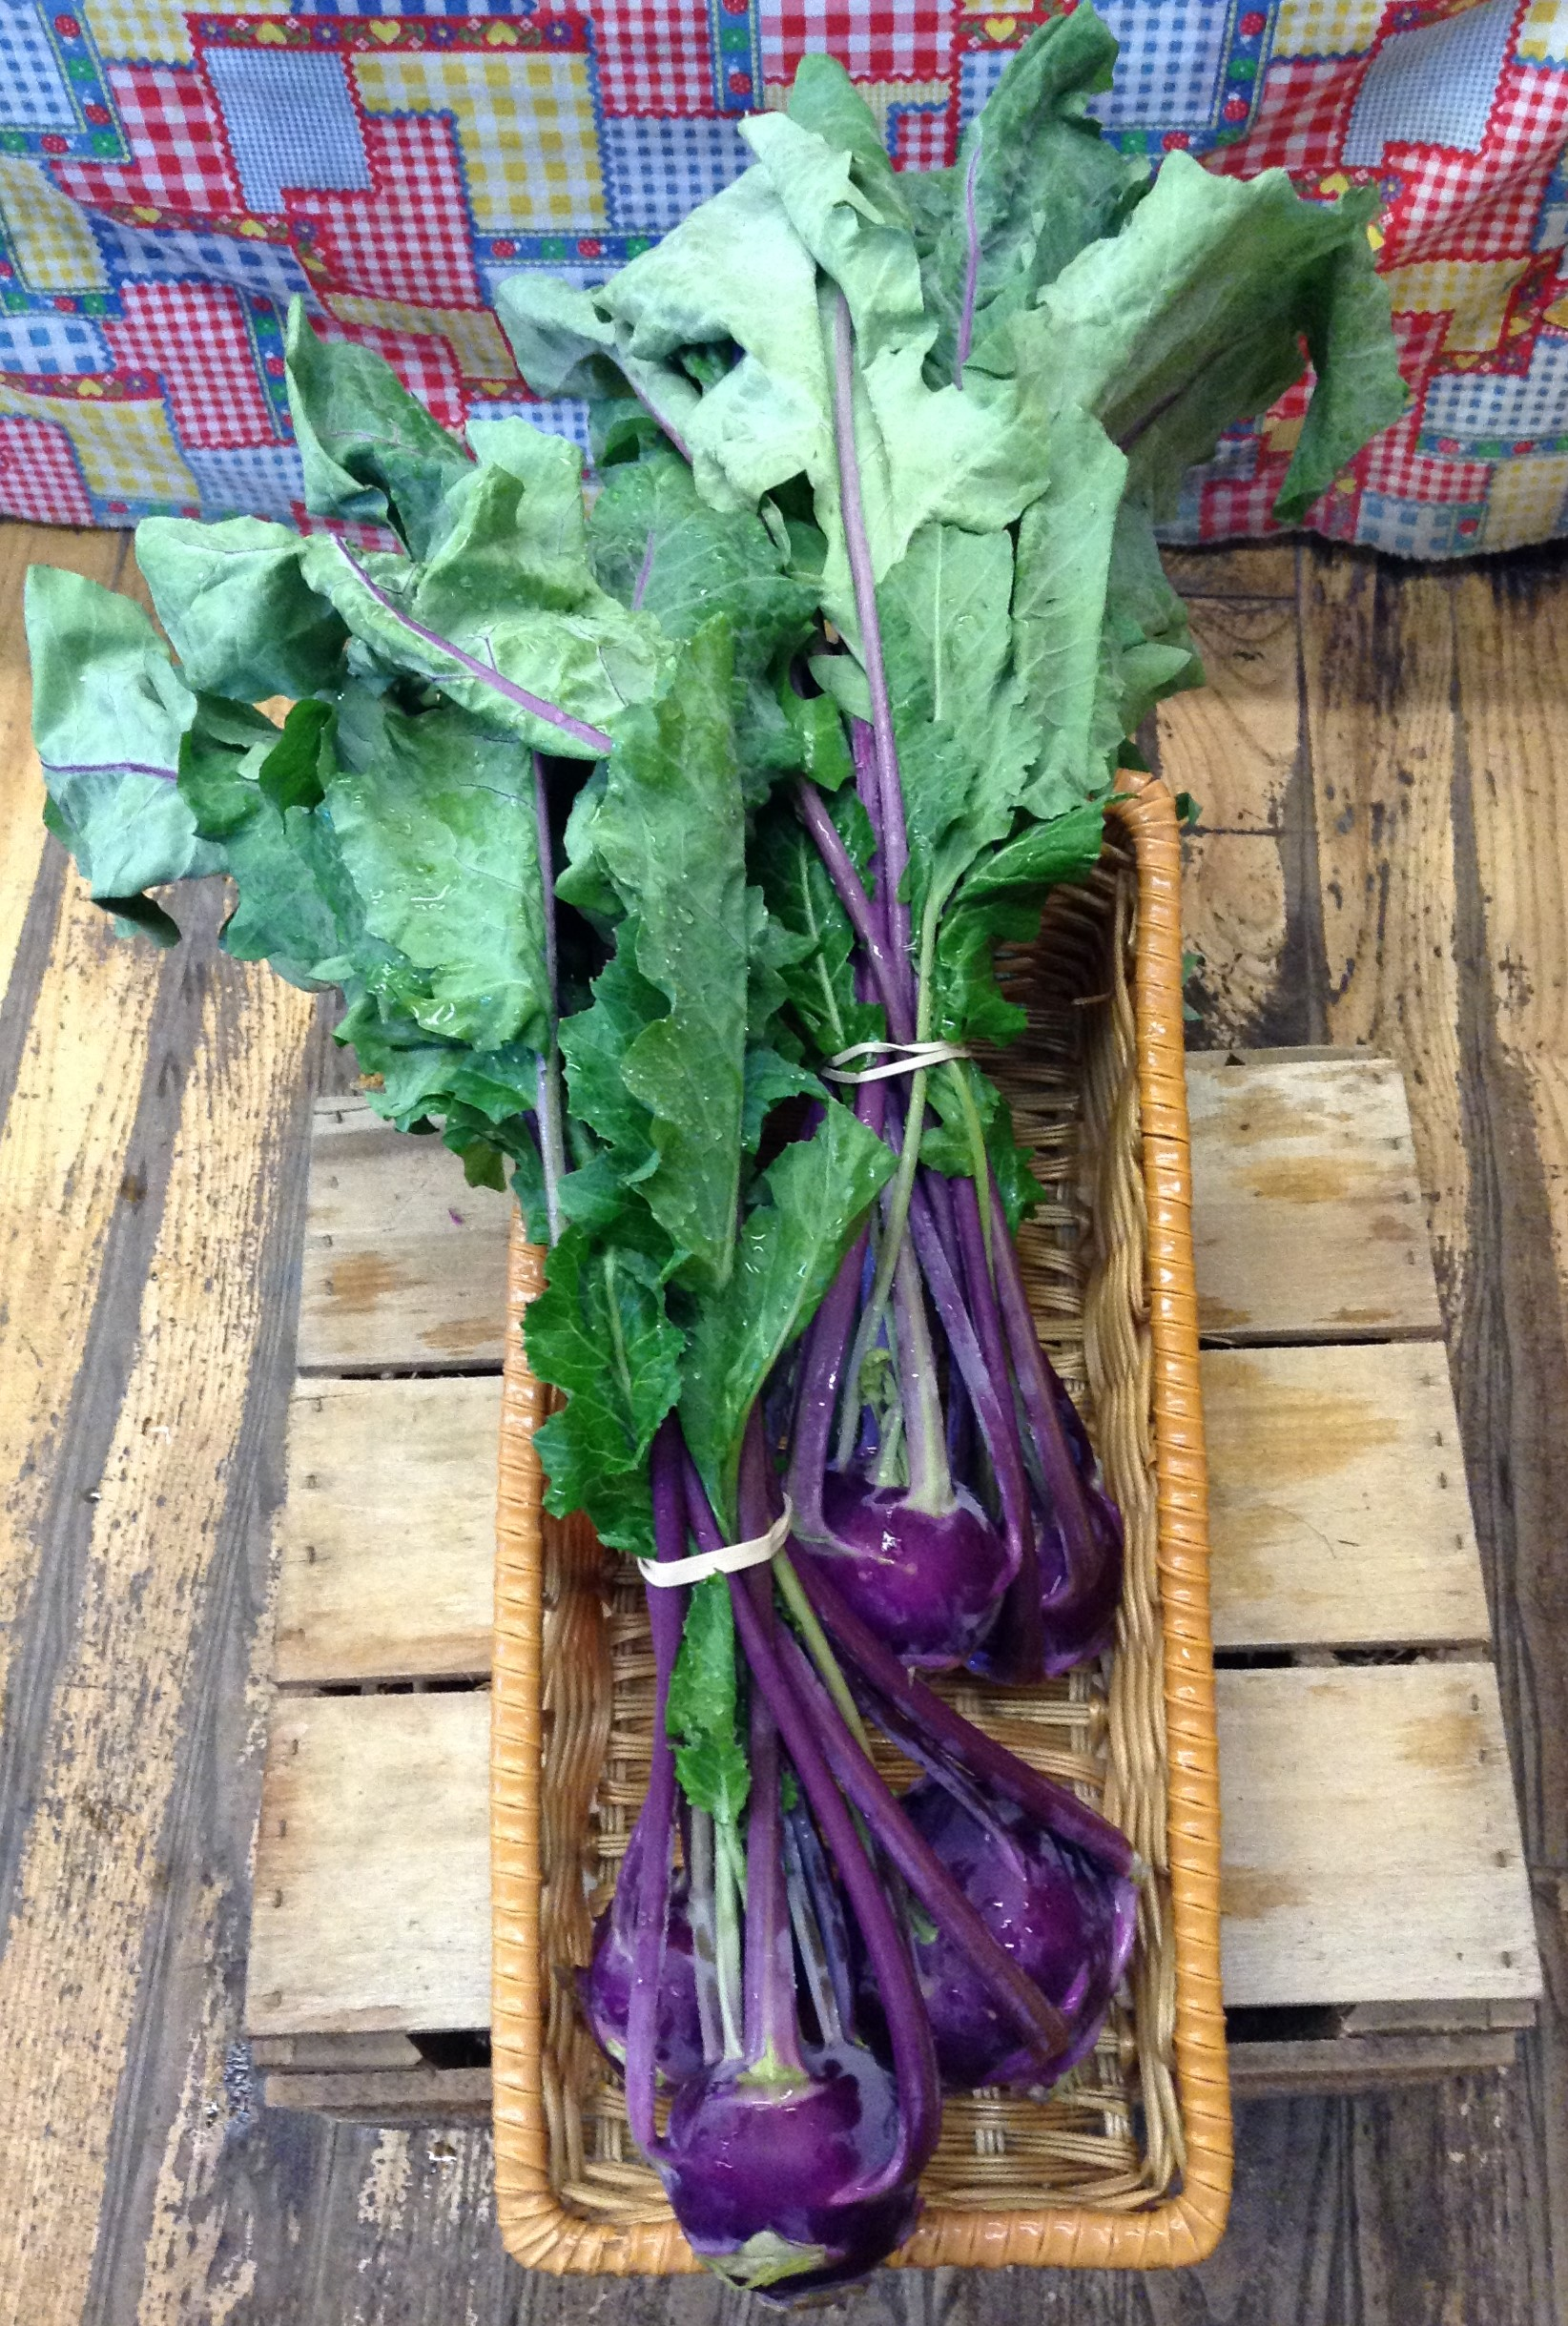 LOCAL Organic Kohlrabi